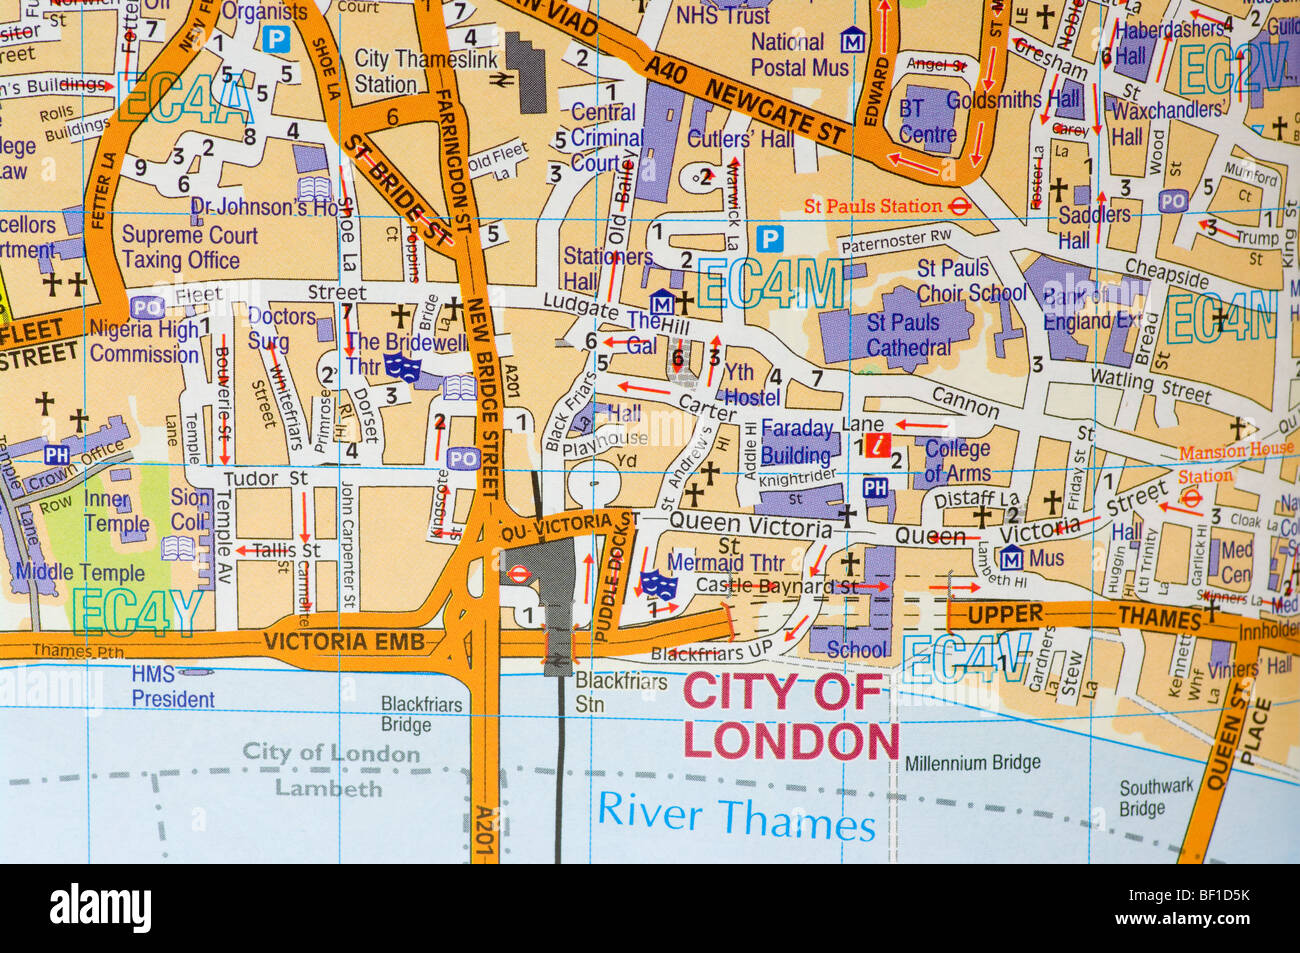 Street Road Map Of The City Of London Uk Stock Photo 26462511 Alamy